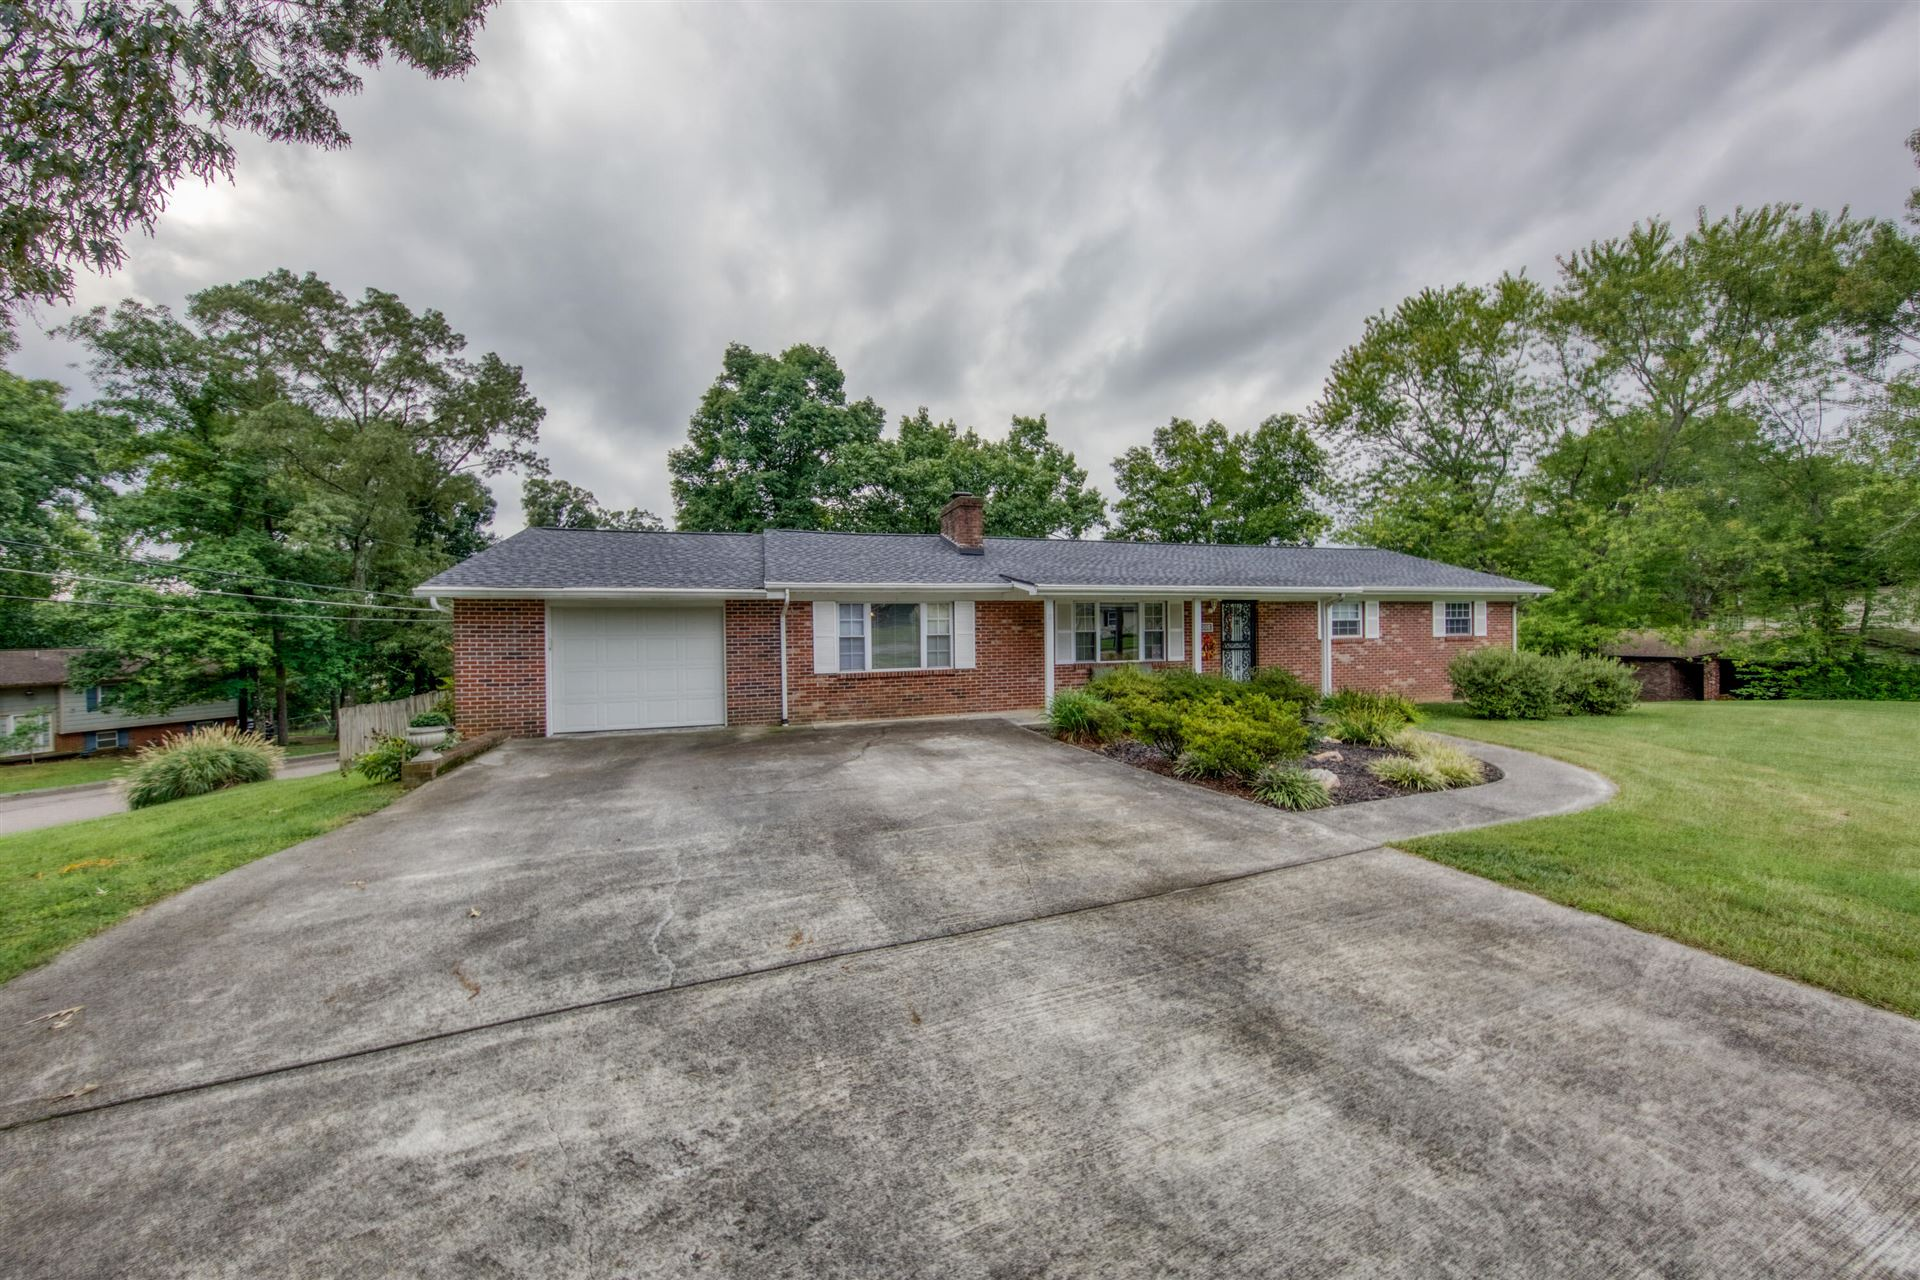 Photo of 7900 N Forest Rd, Knoxville, TN 37909 (MLS # 1168579)